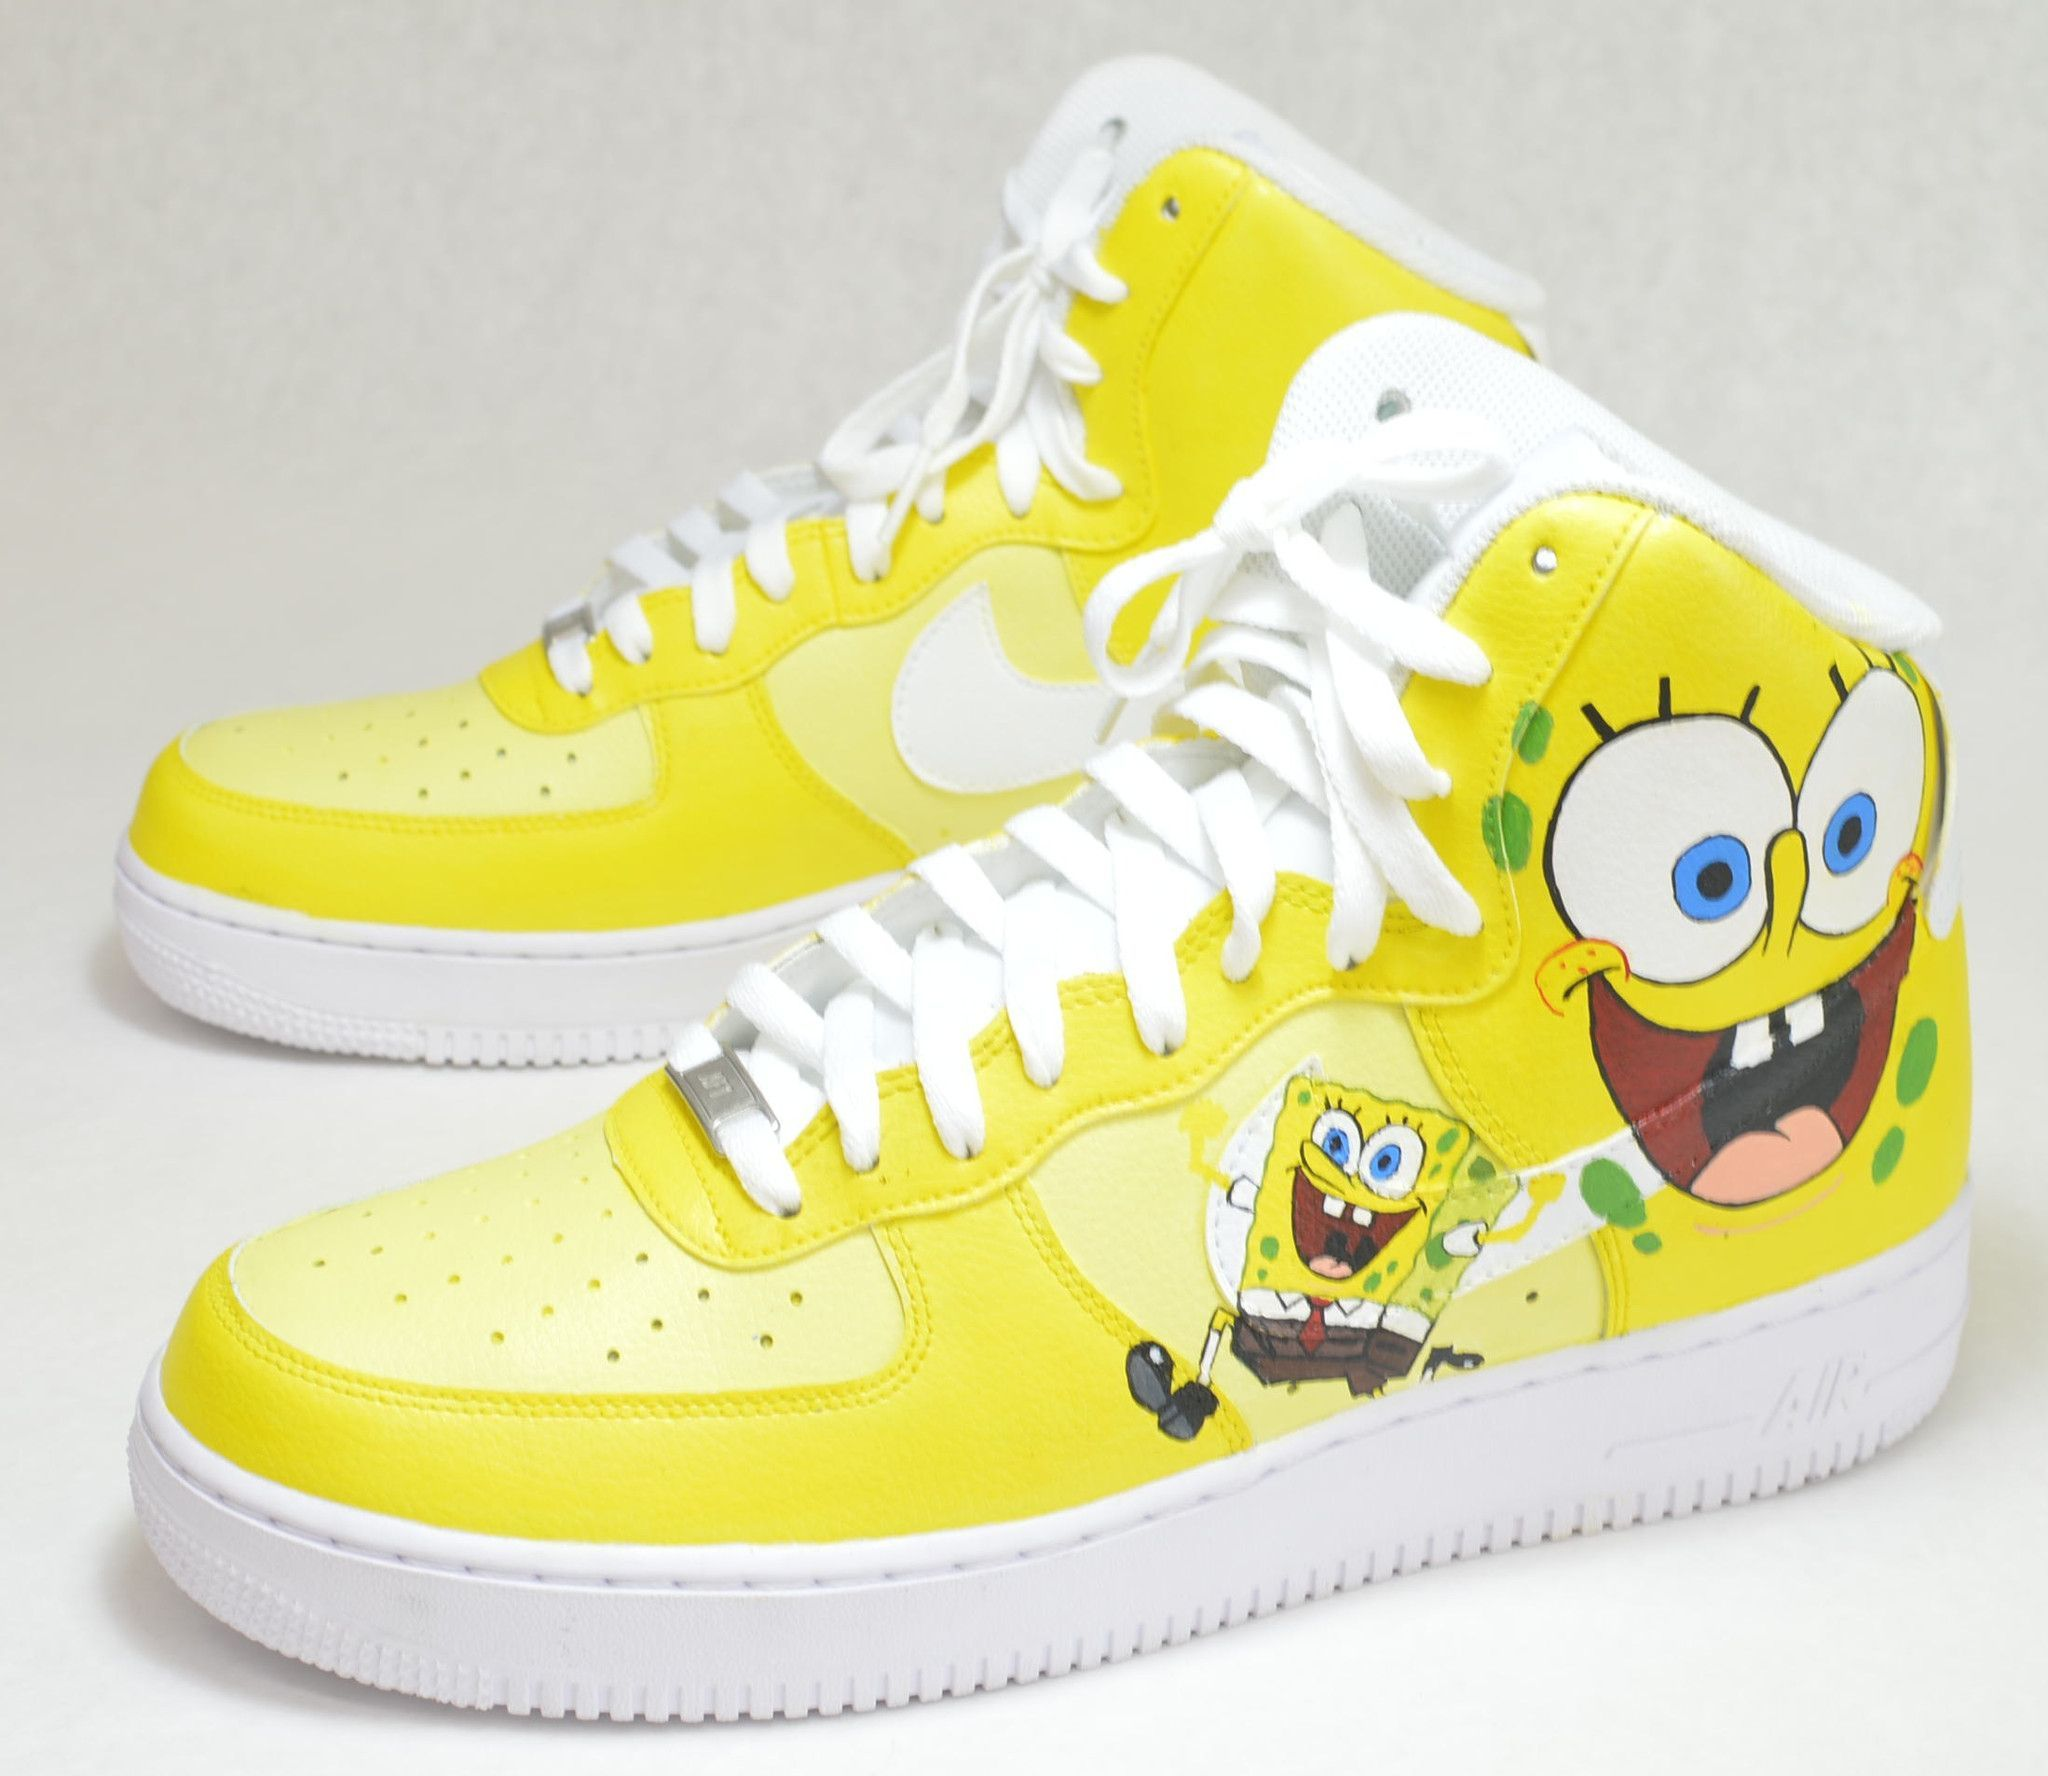 Spongebob SquarePants Nike AF1 High - Custom Painted Sneakers